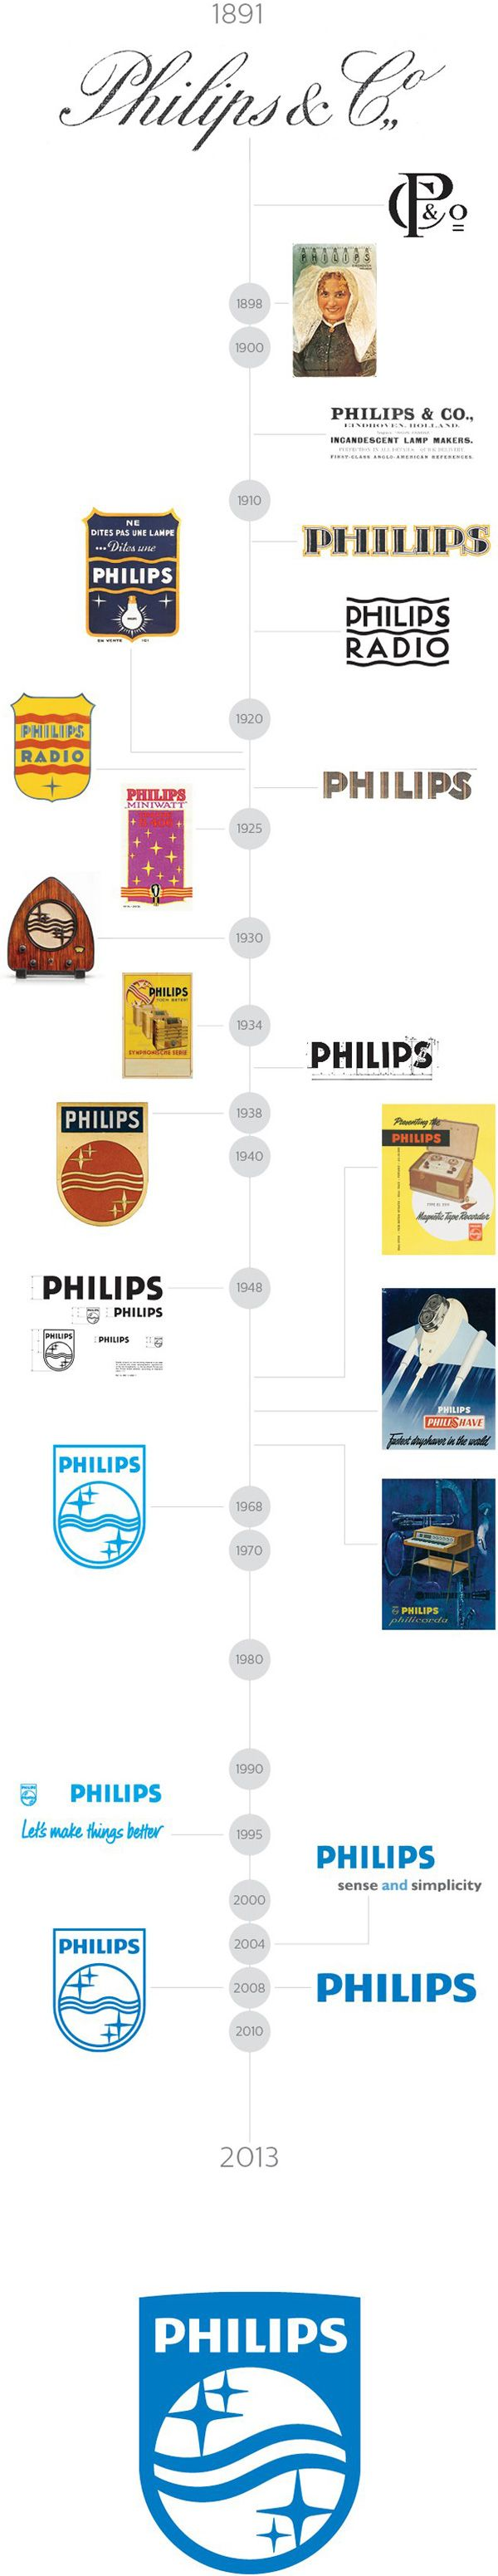 Philips logo from 1891 till most recent new revised logo 2013 by Philips' in-house design team, led by Thomas Marzano, working in partnership with Interbrand, Ogilvy, and OneVoice